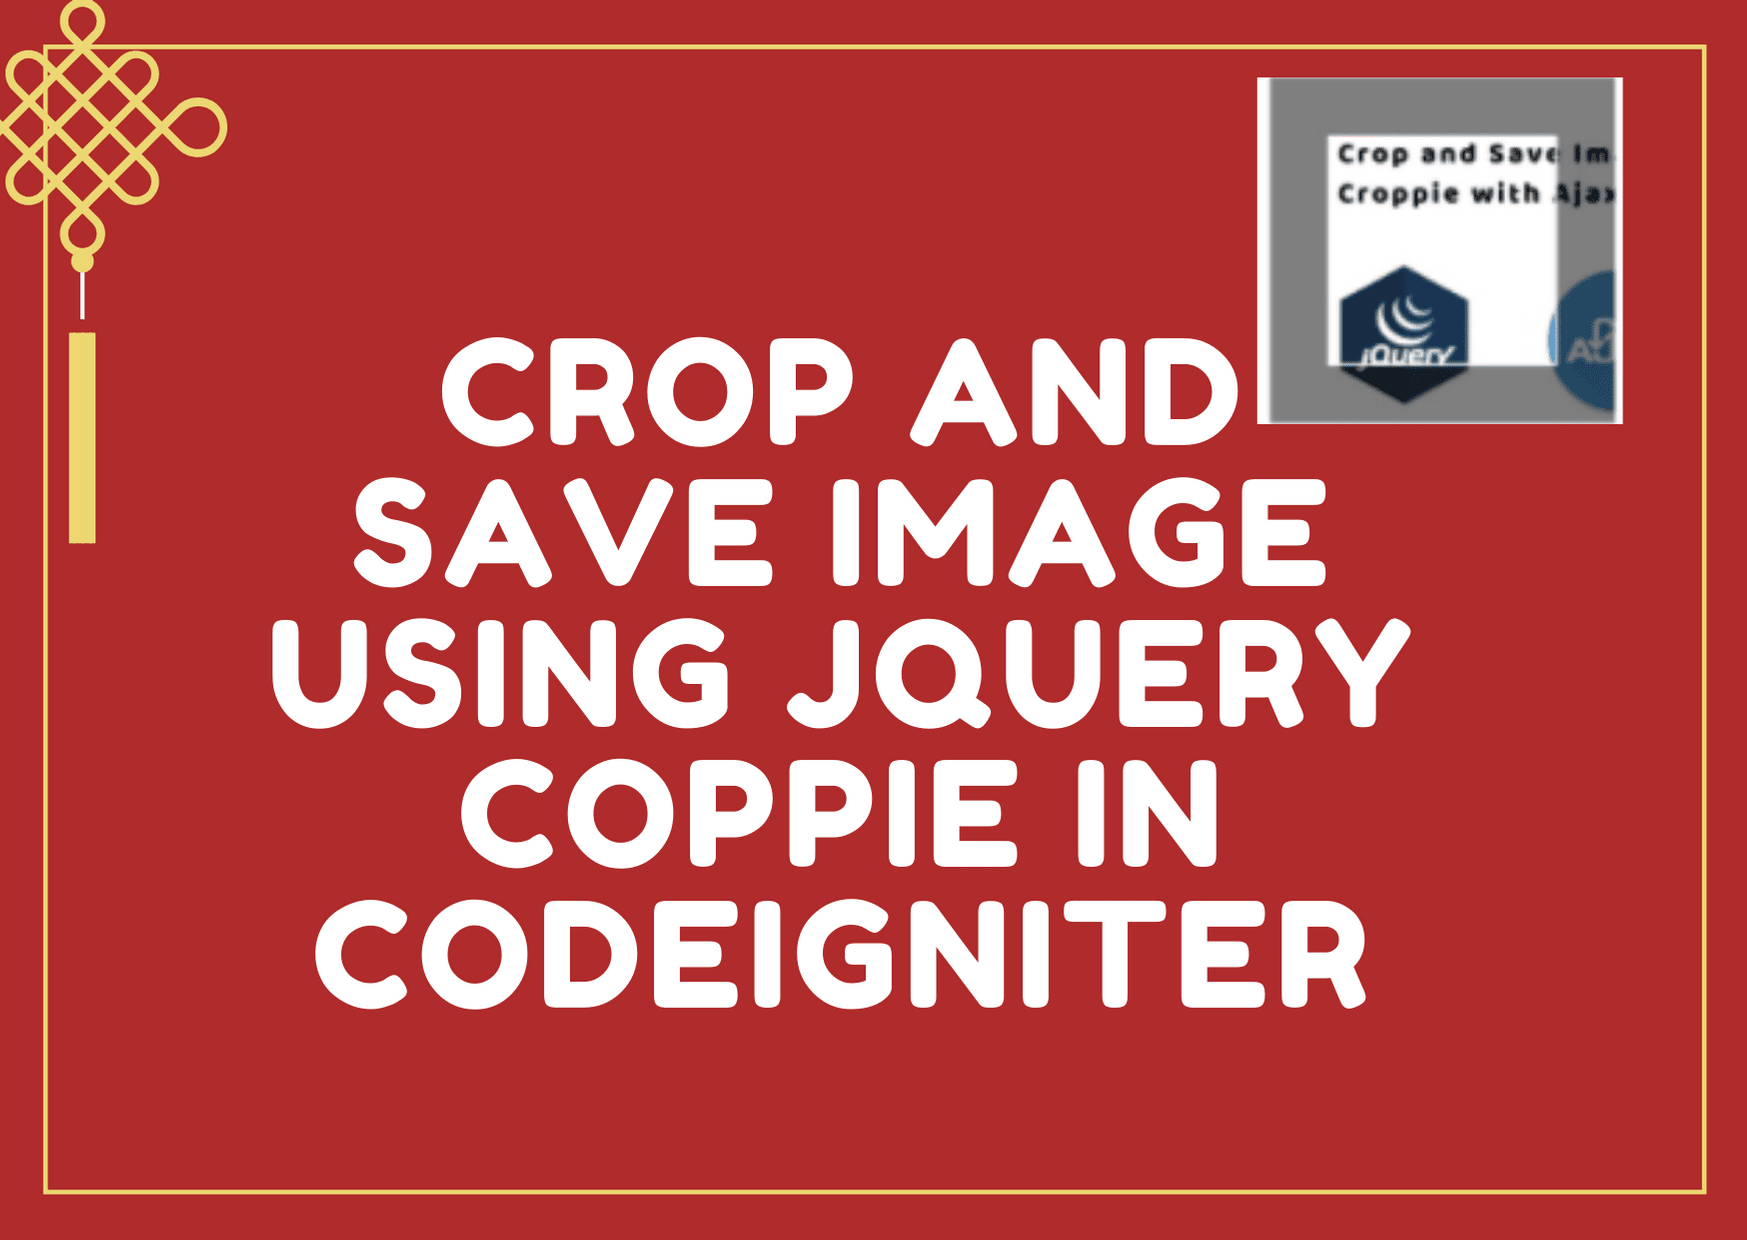 Crop and Save Image using jQuery Coppie in Codeigniter